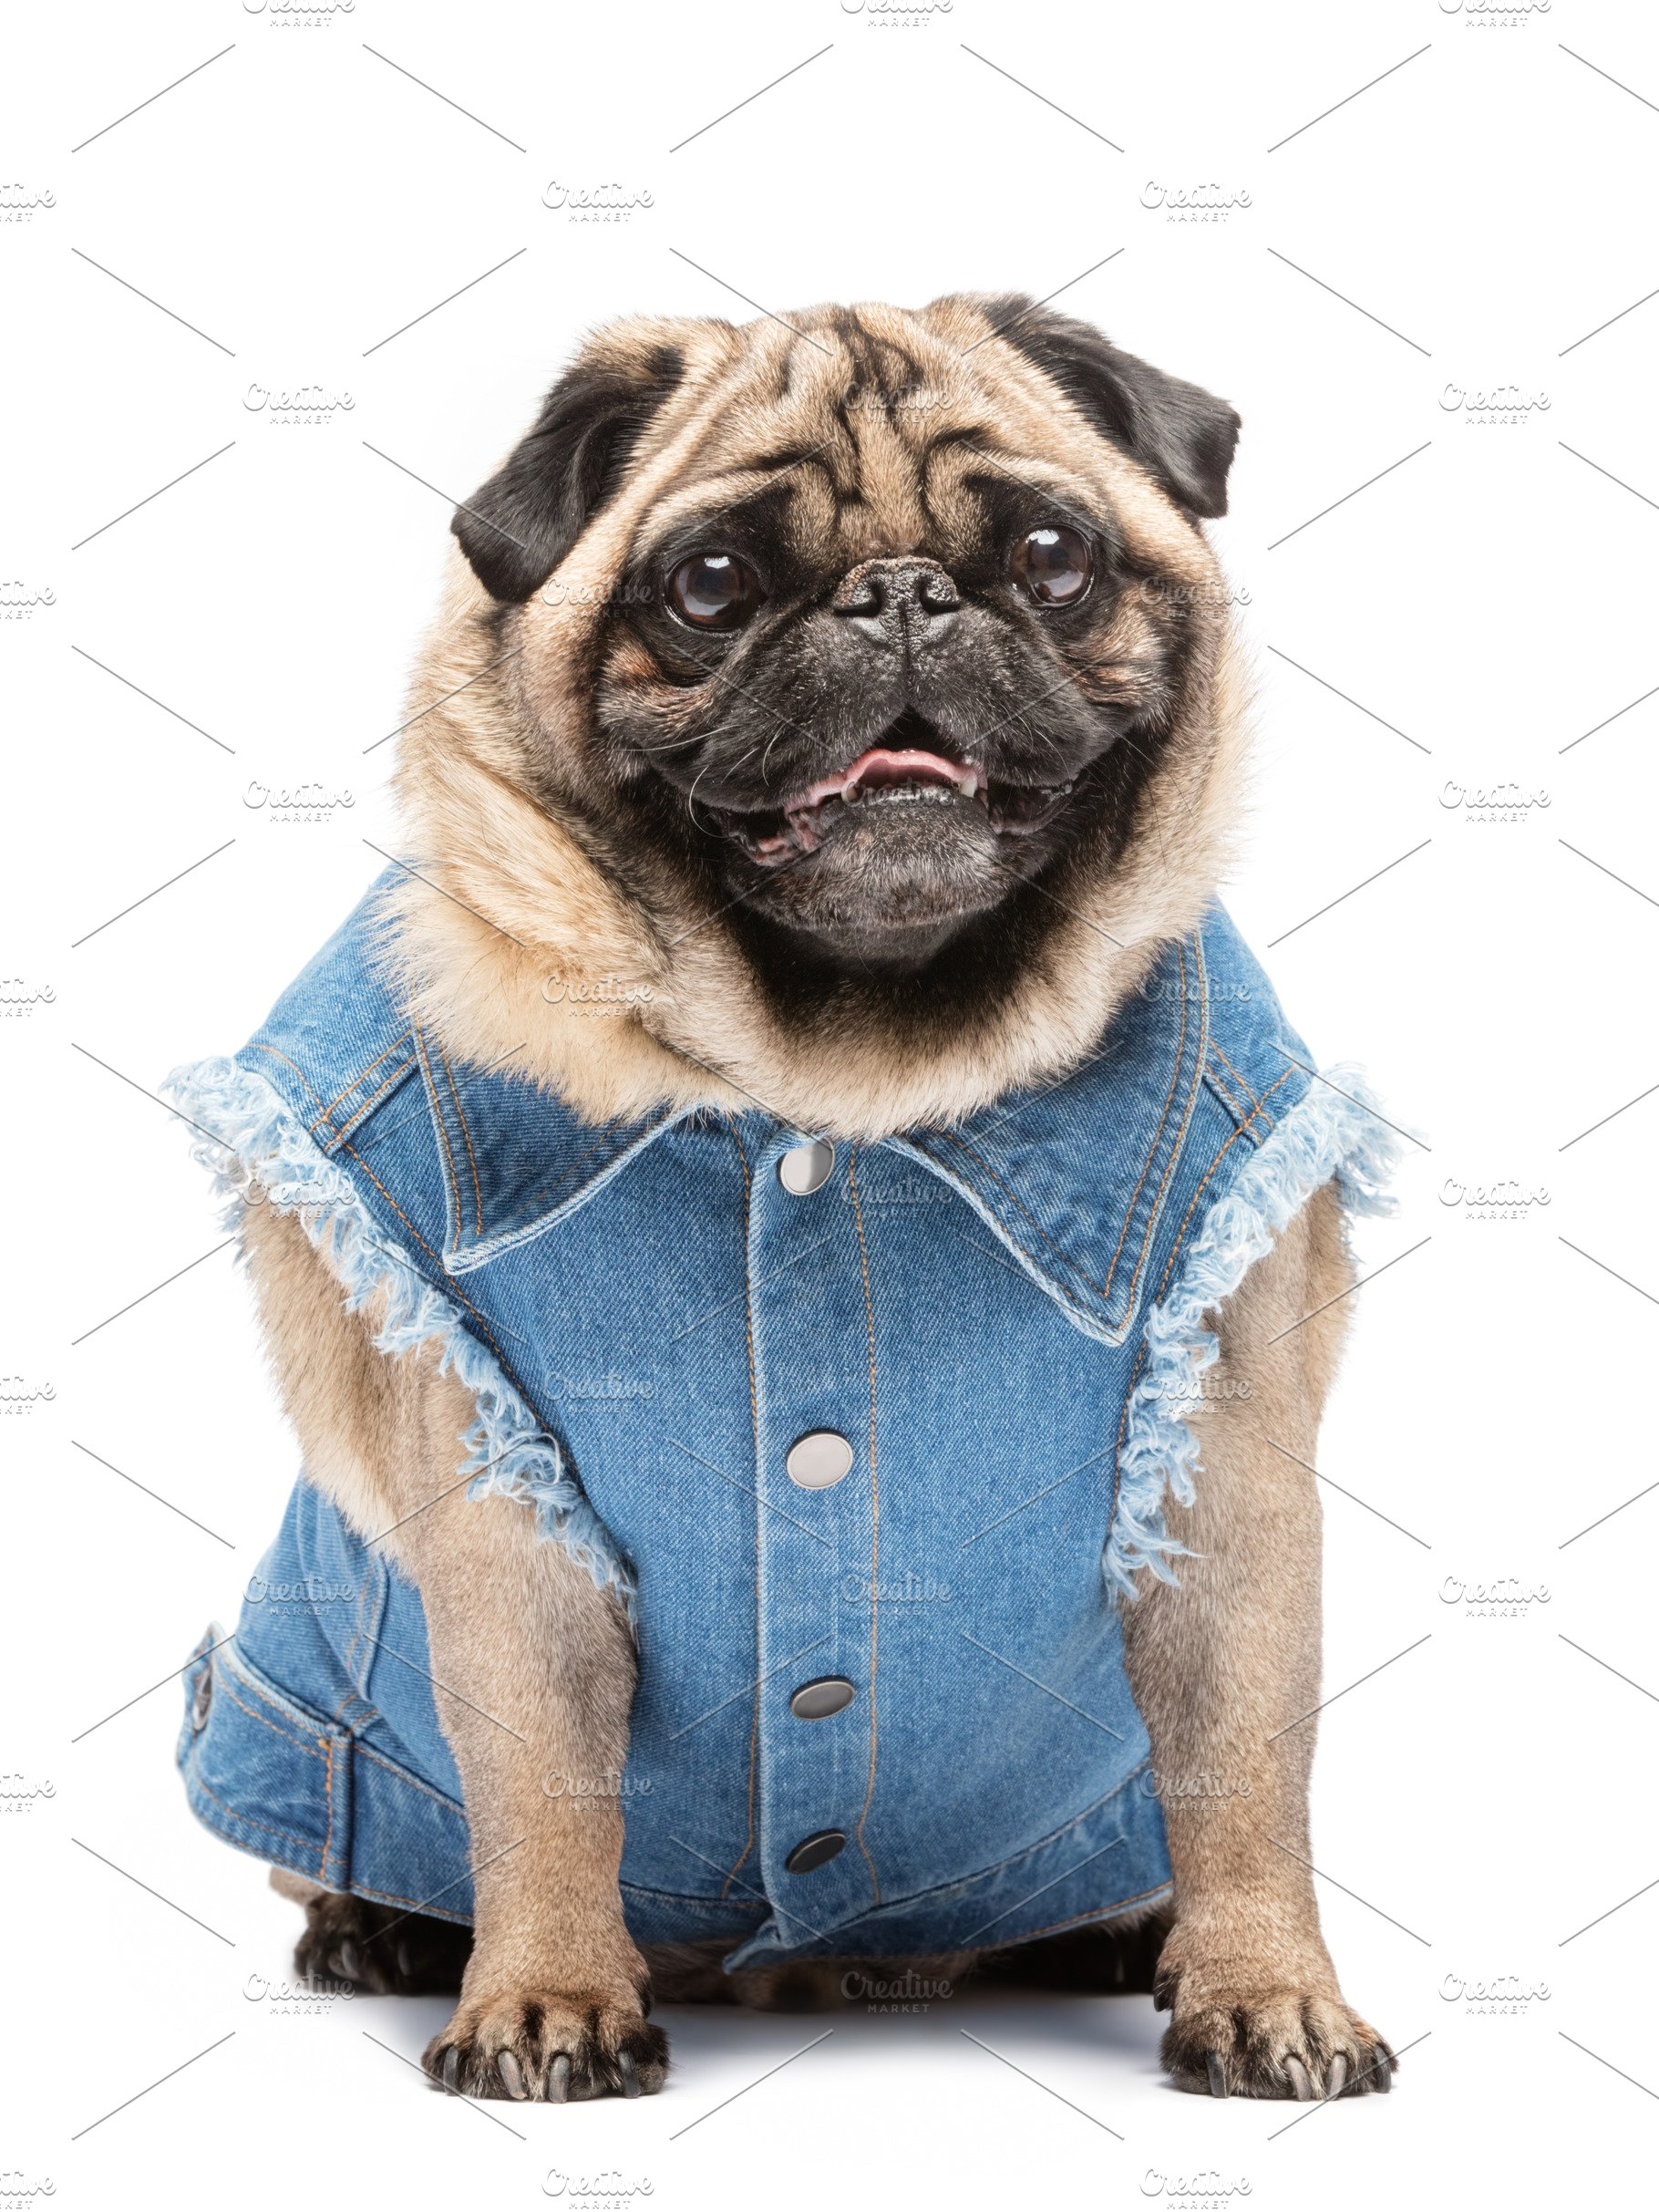 d578fa62 Smiling pug in fashionable vest. ~ Animal Photos ~ Creative Market